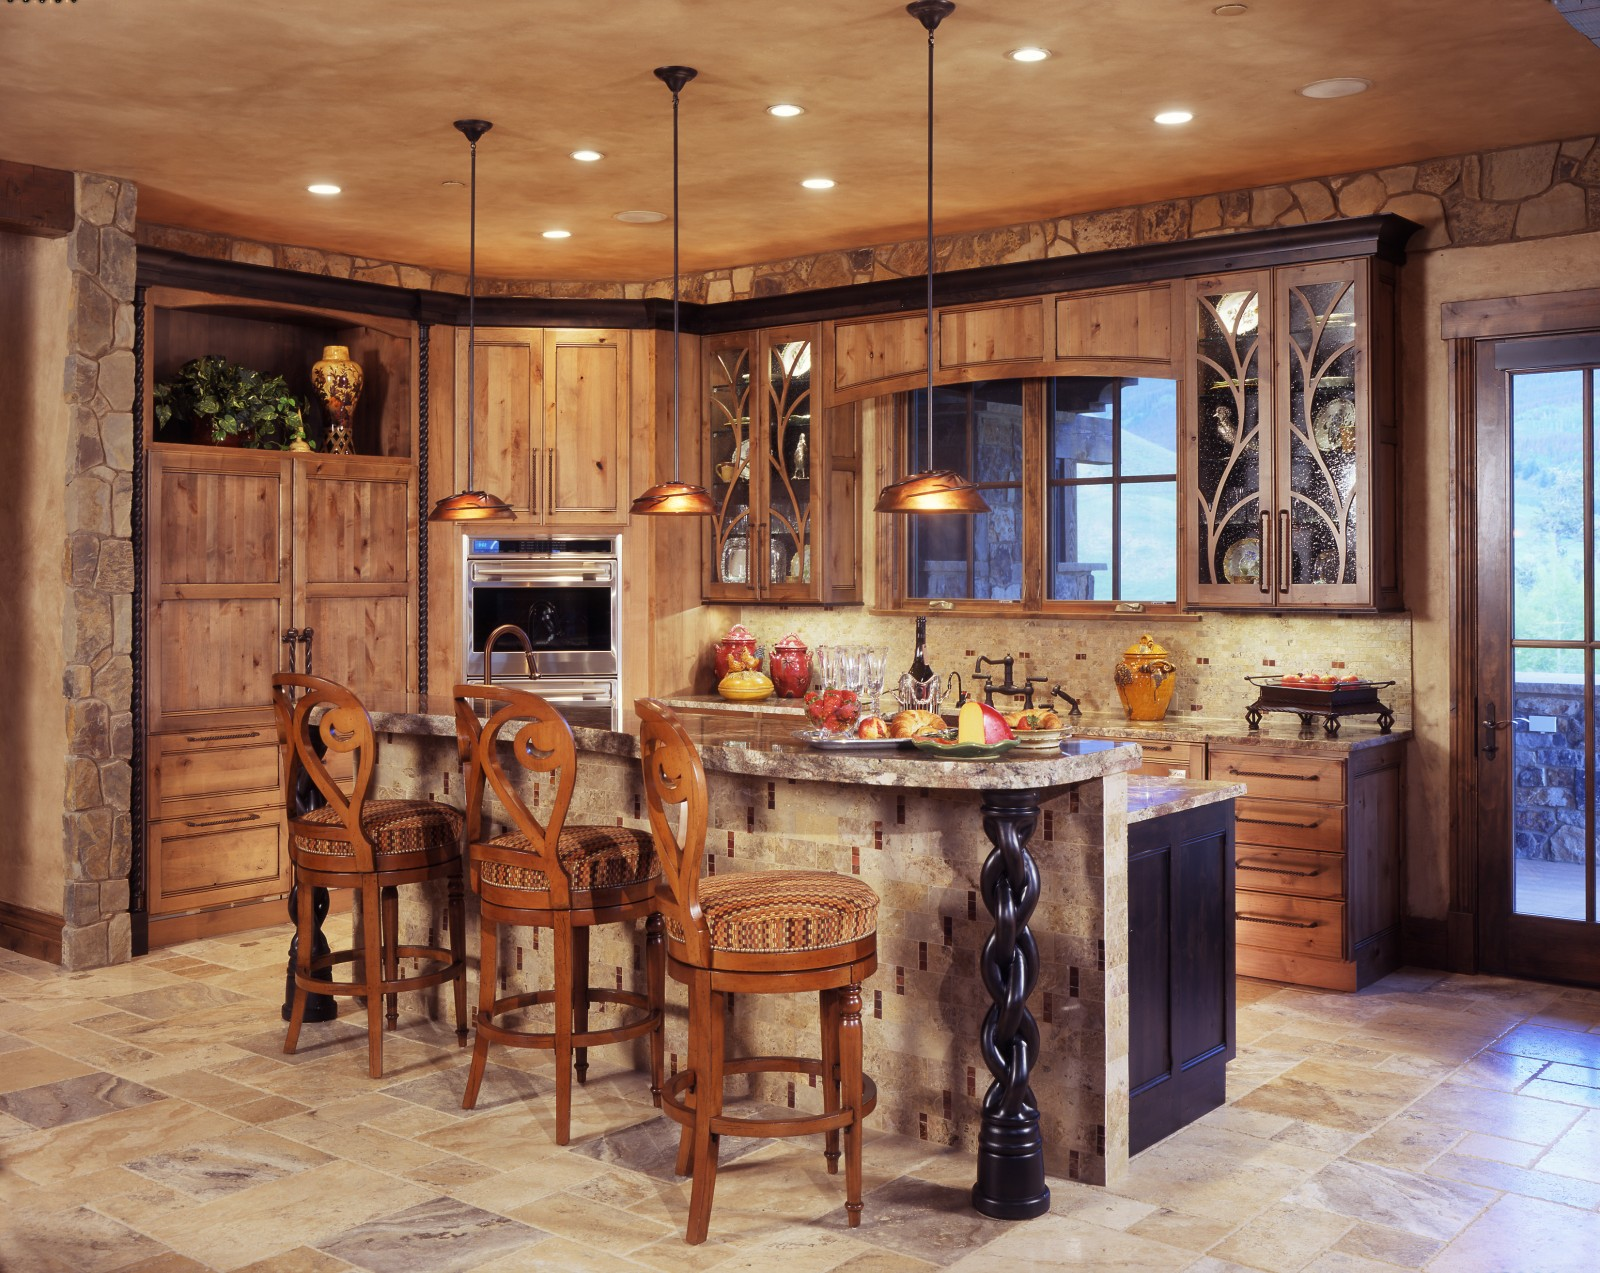 Top 25 ideas to spruce up the kitchen decor in 2014 qnud for Rustic kitchen island ideas